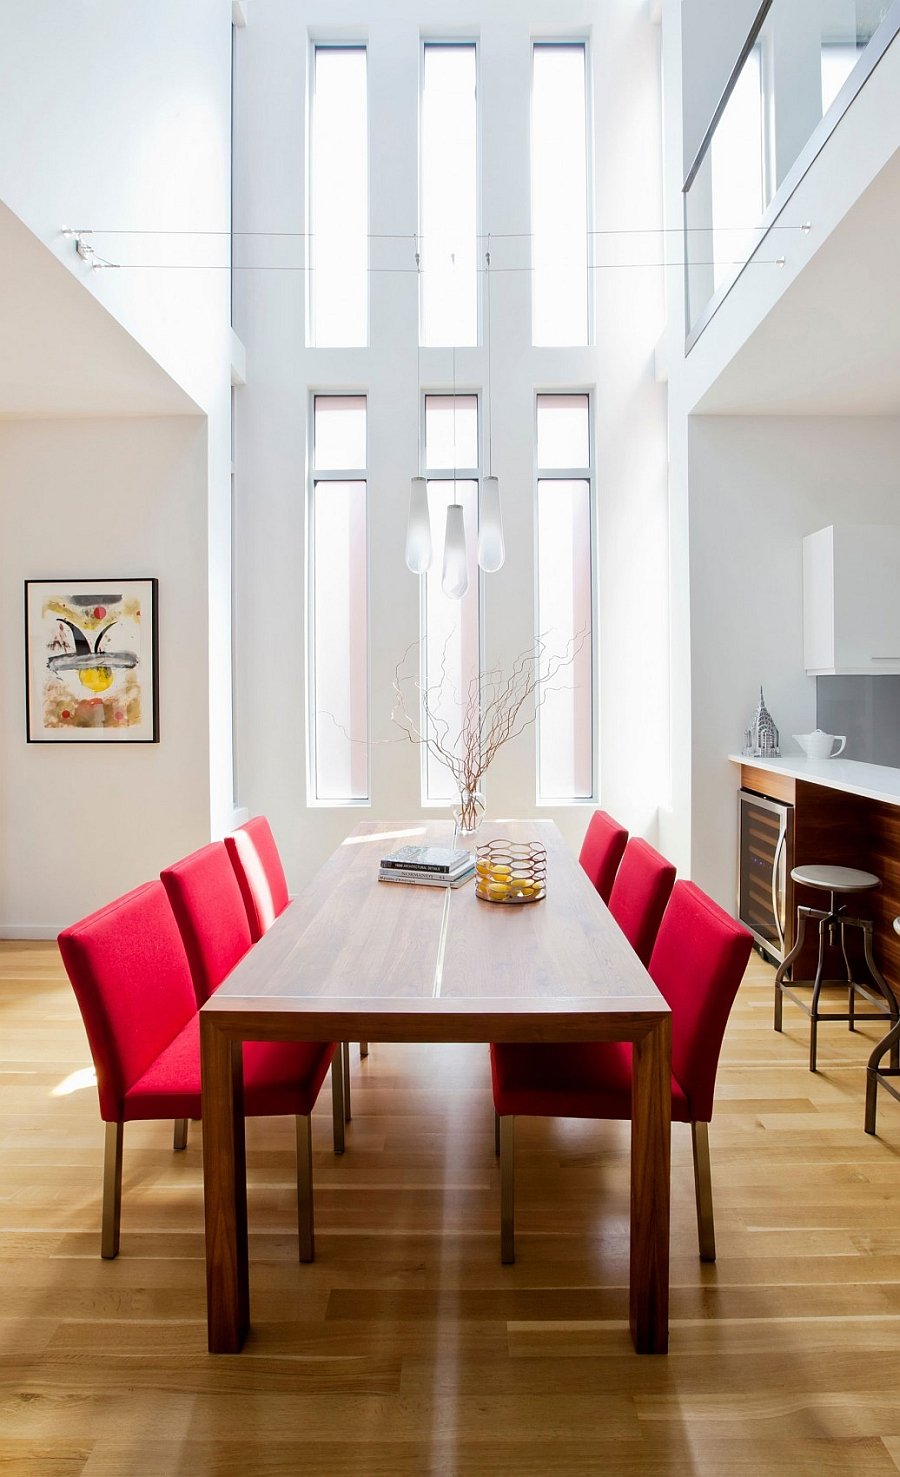 Beautiful dining space combines art deco style with a more contemporary appeal Ingenious Montreal Residence Blends Heritage Appeal With Modern Flair